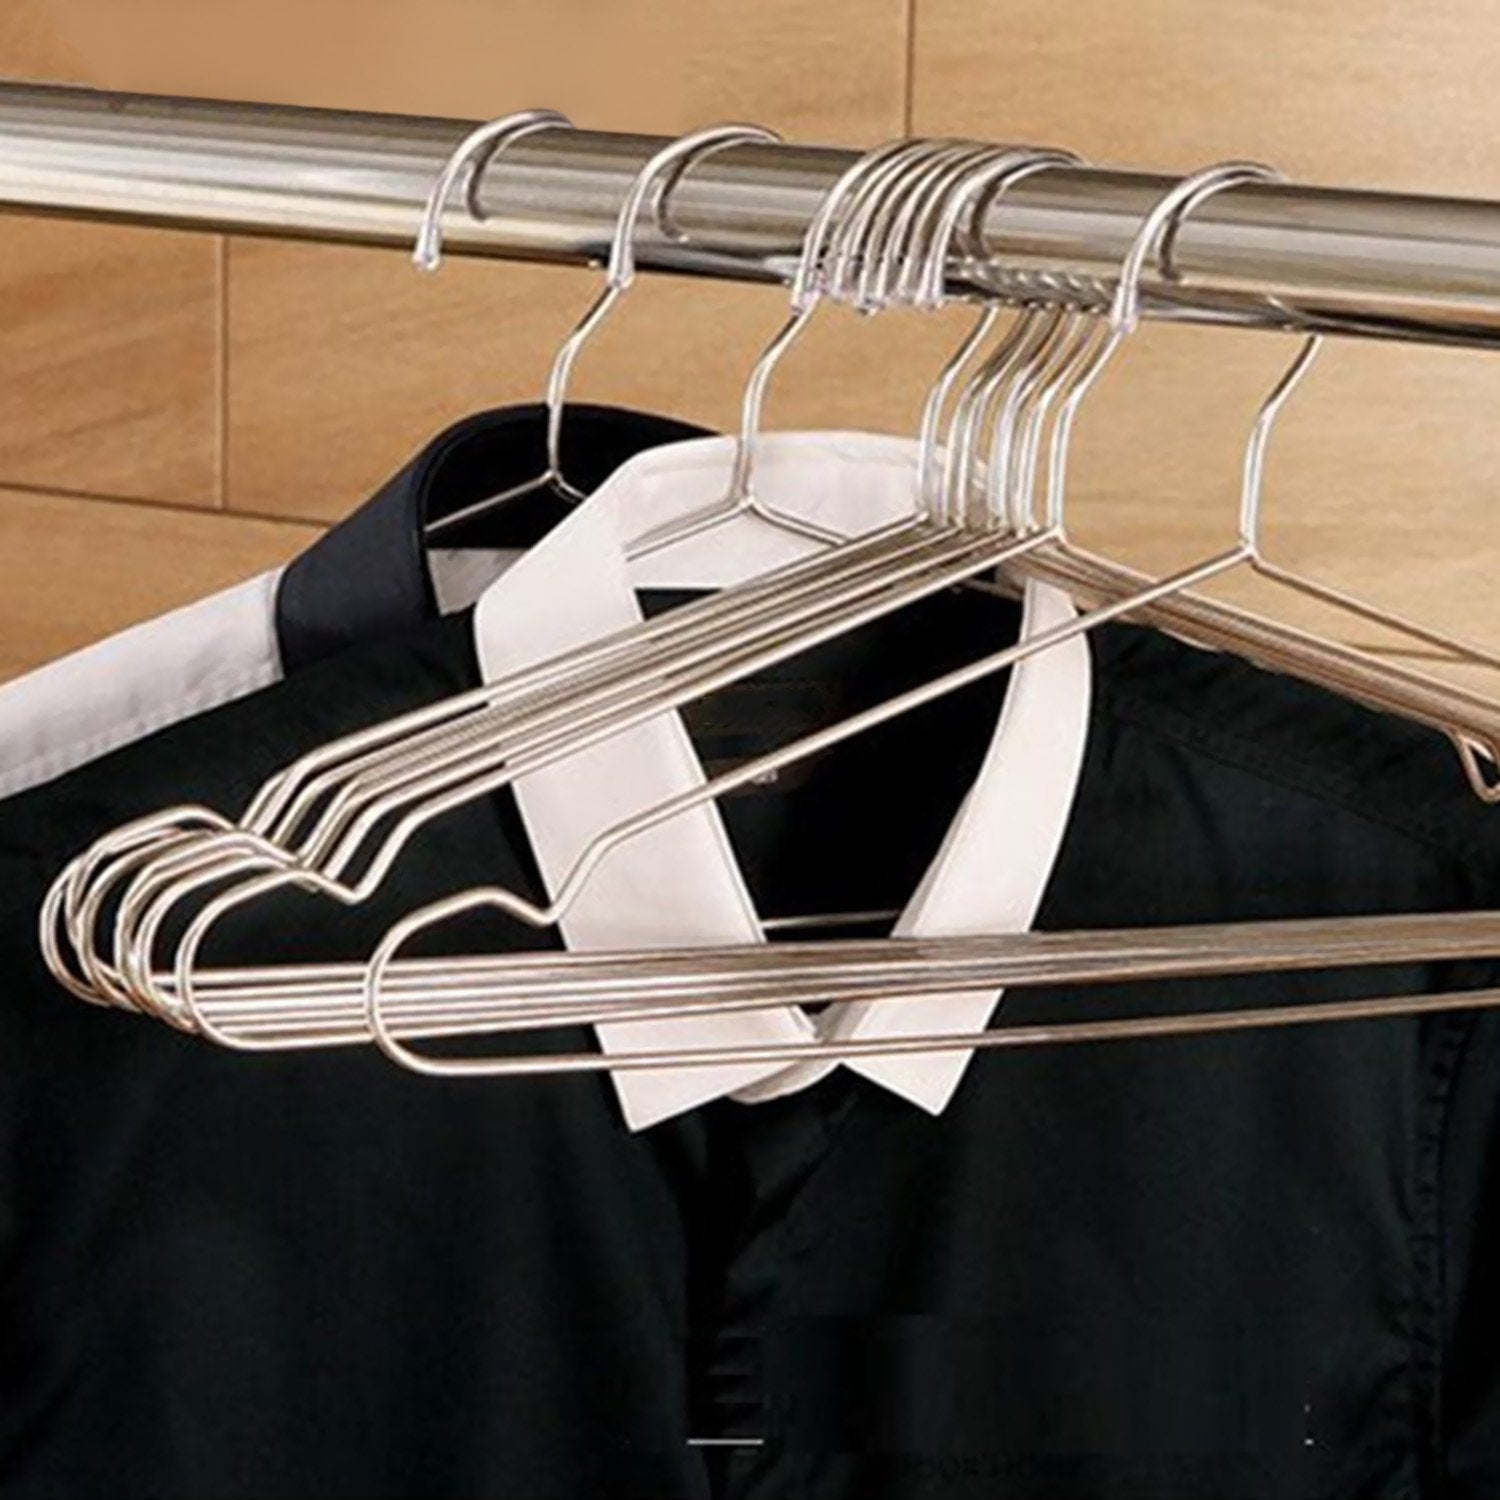 Clothes Hangers, Sauran 20 Pack Stainless Steel Strong Metal Wire Hangers For Clothes 16 Inch (Pack of 20 pcs)